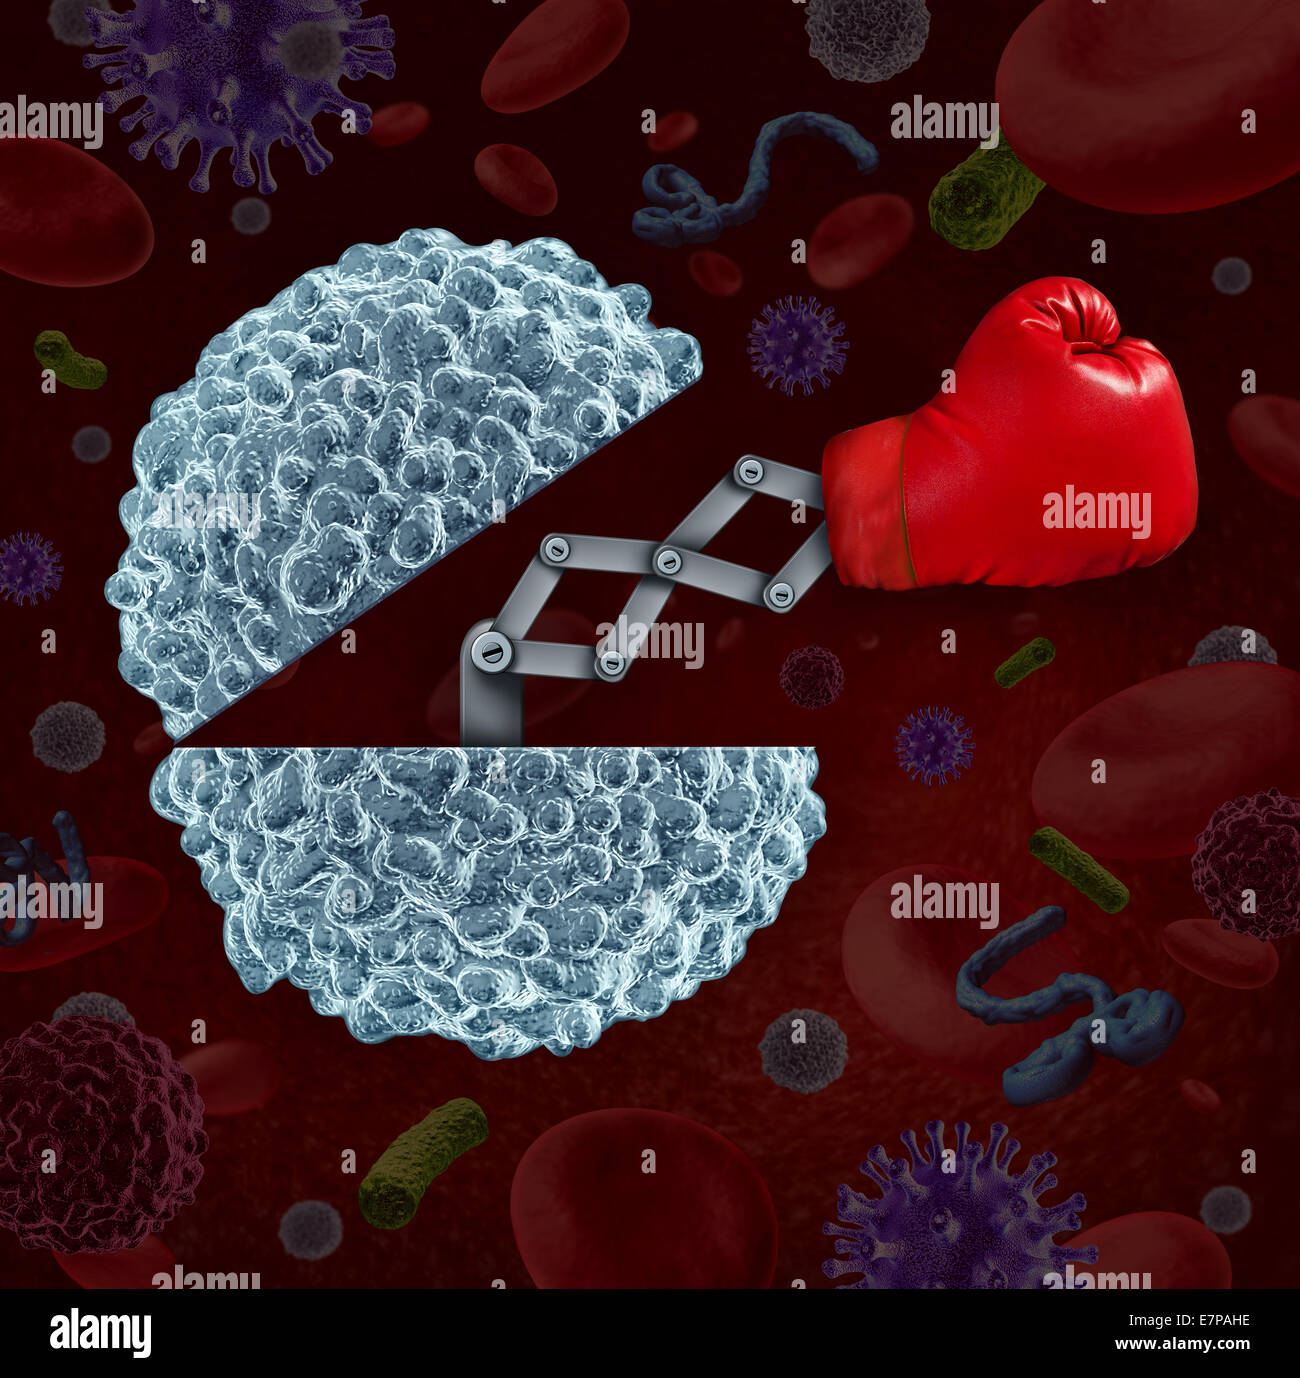 Immune system concept as an open white blood cell with a boxing glove emerging as a health care metaphor for fighting - Stock Image